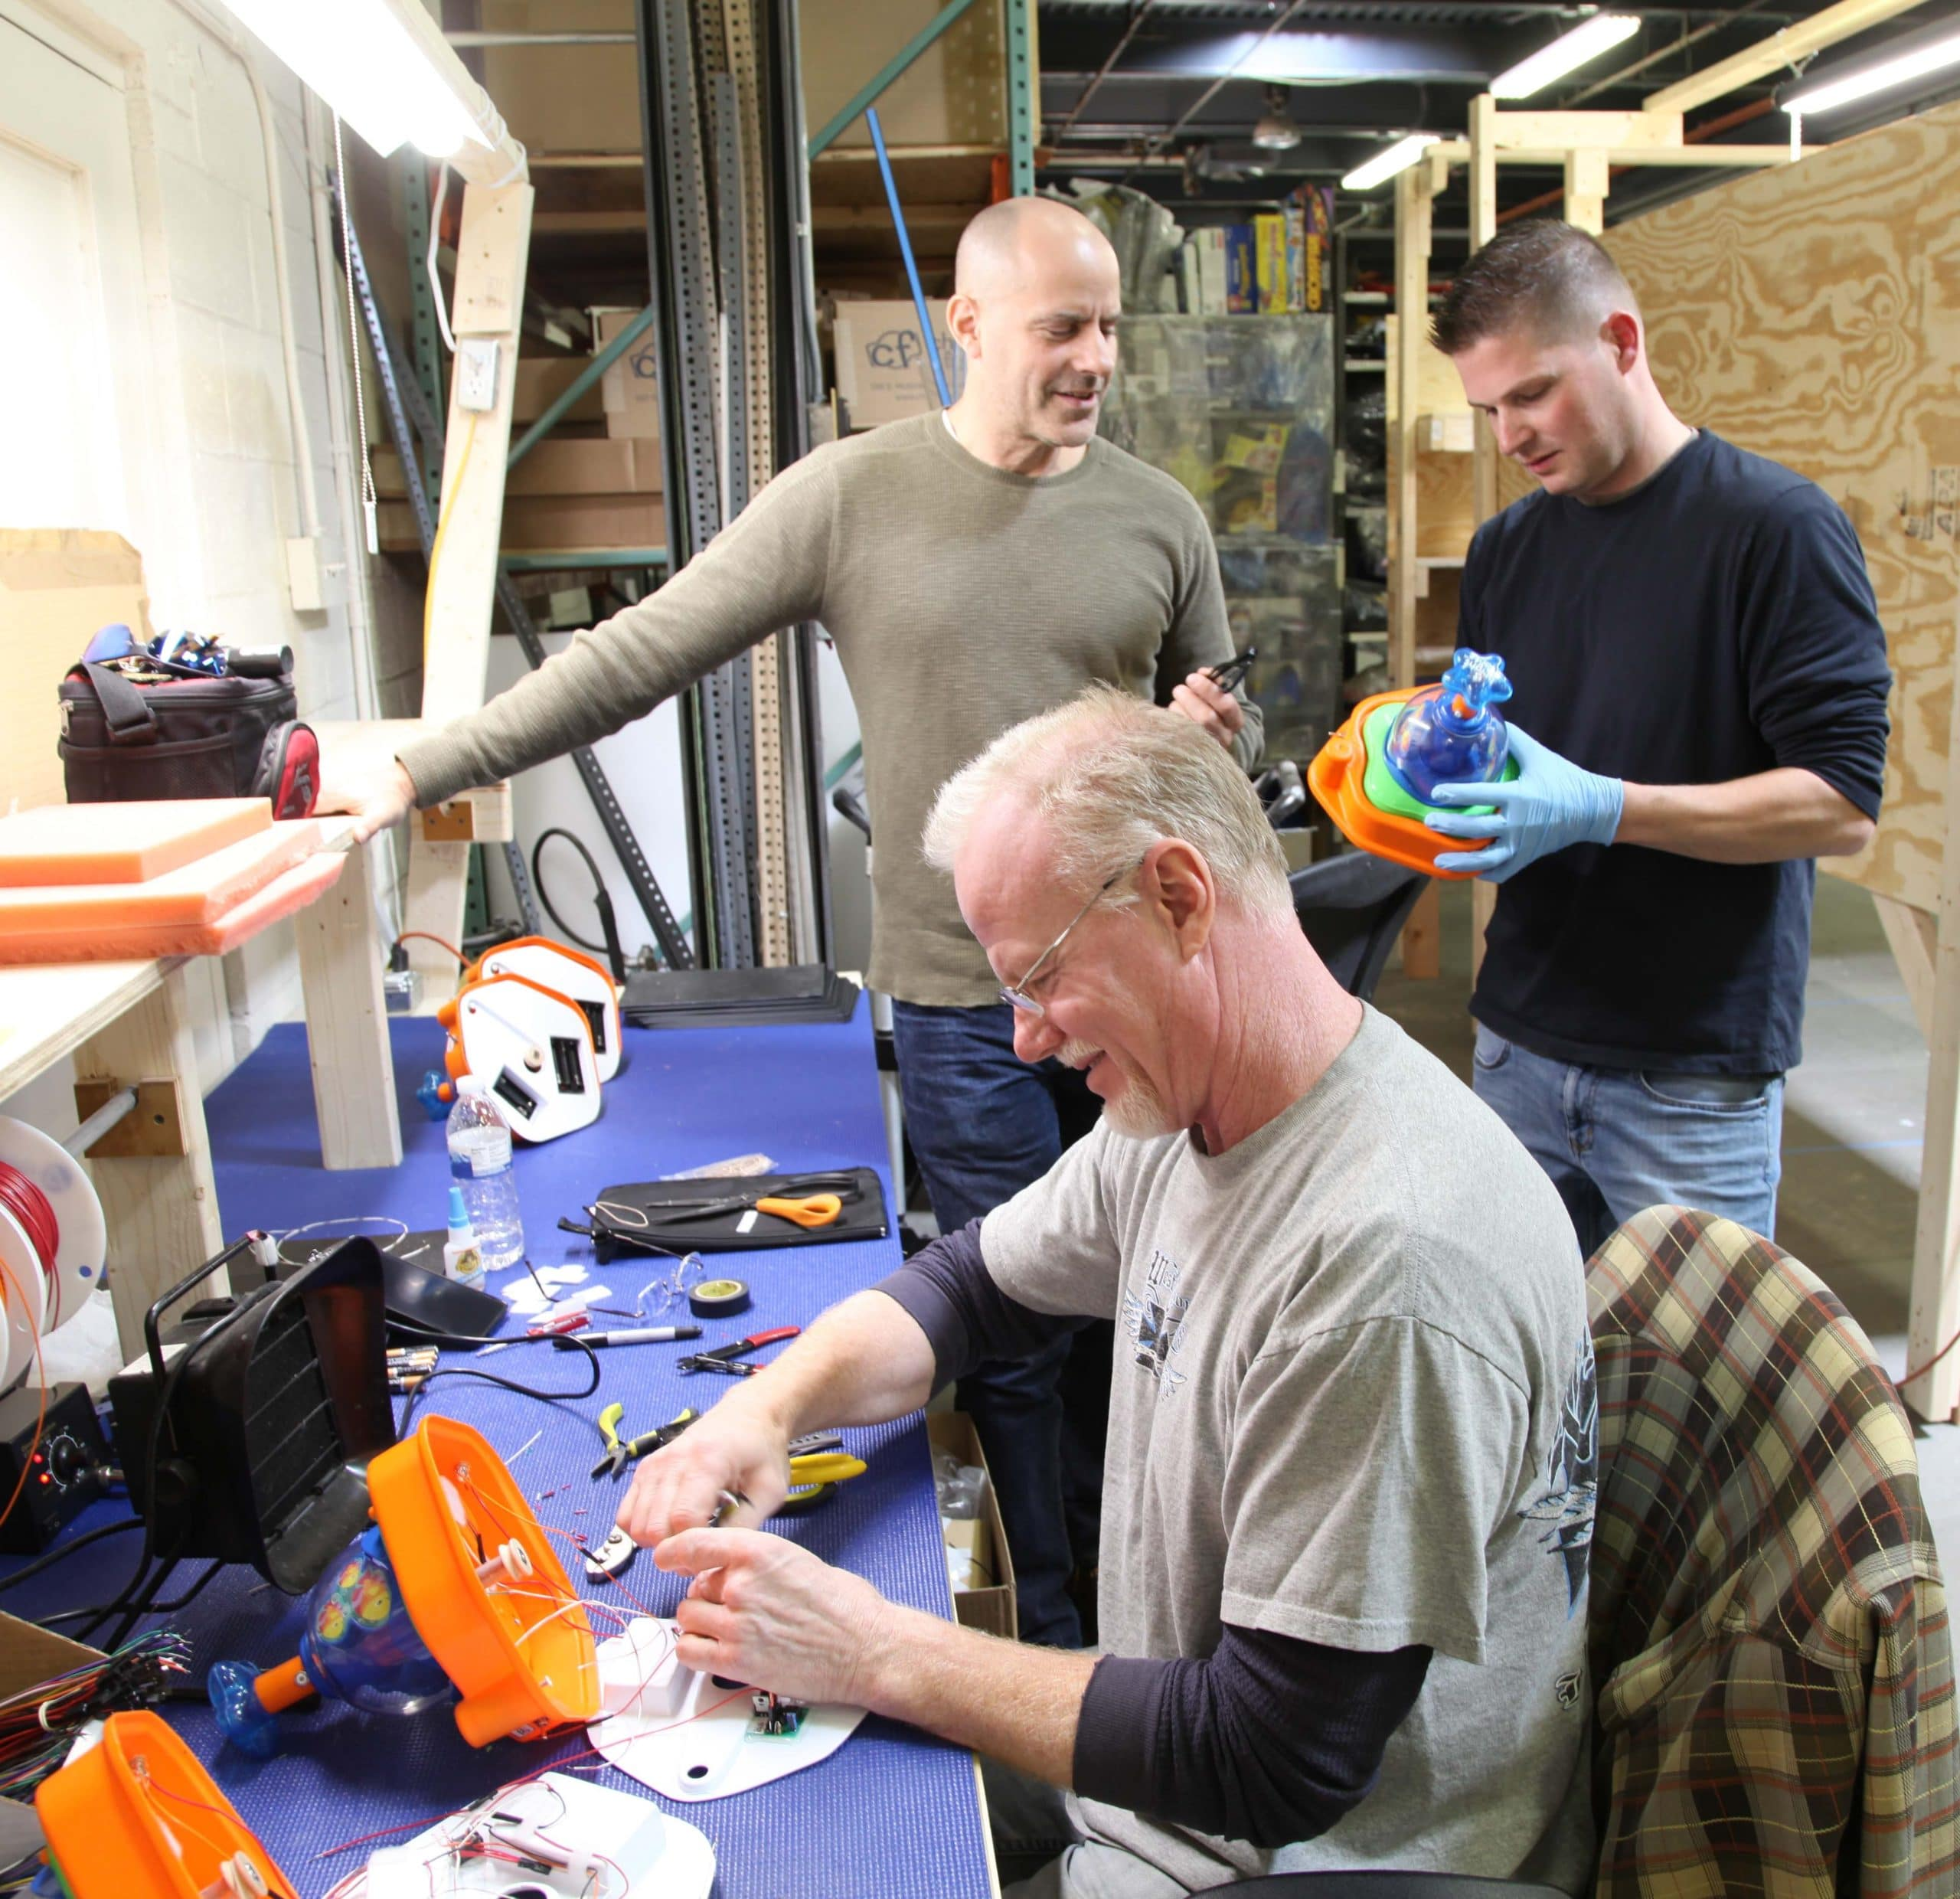 Three Enabling Devices employees building new products in our manufacturing facility